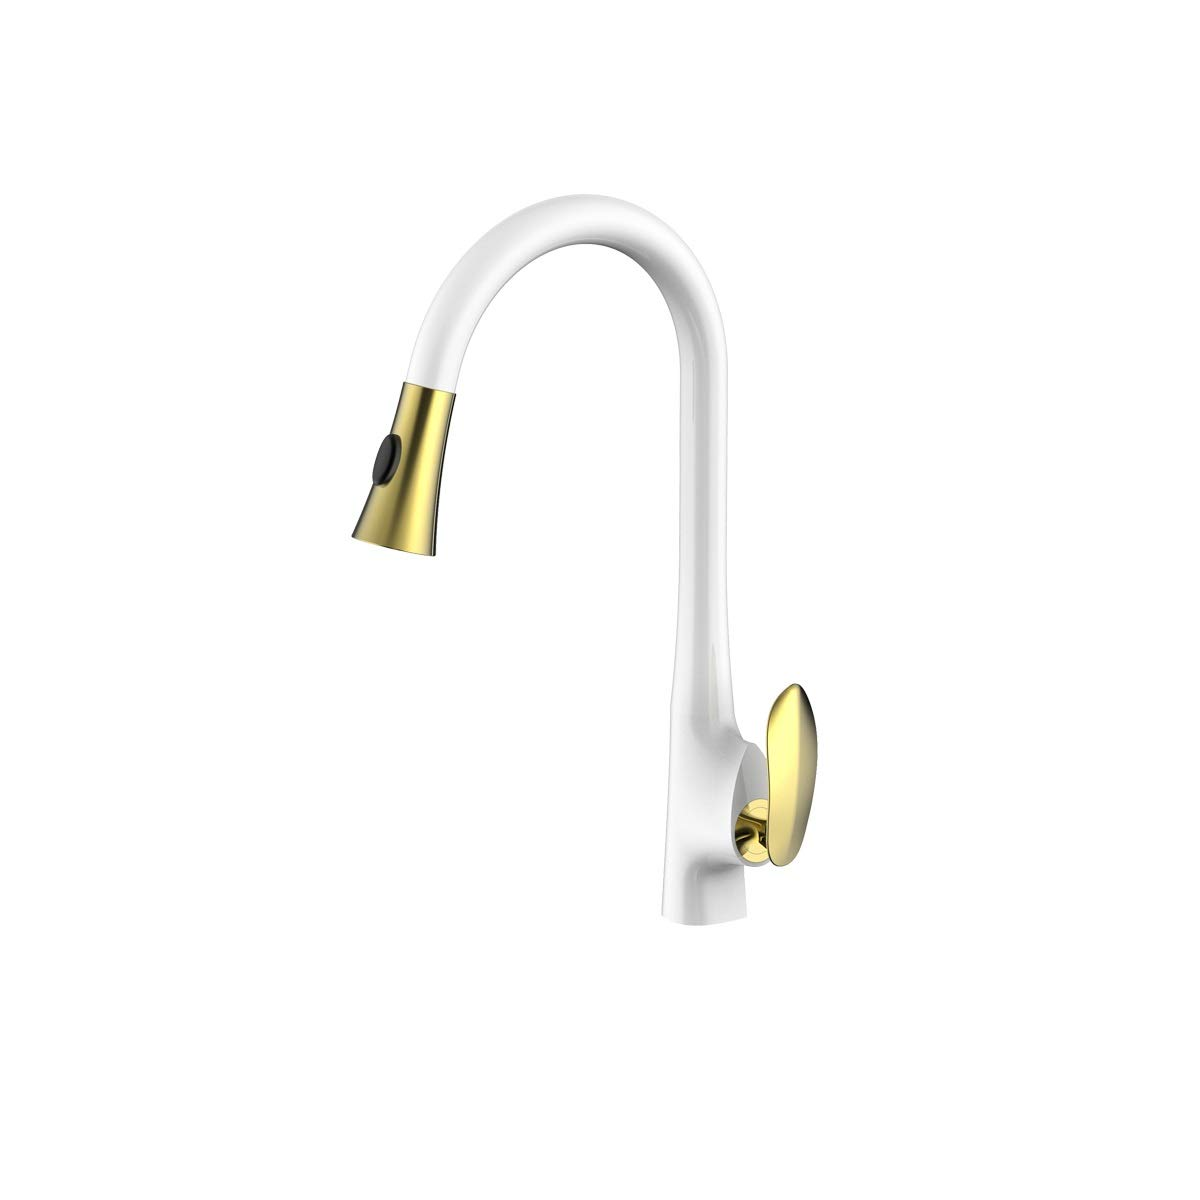 CQIANG Gold Pull Out Kitchen Sink Faucet Champagne Bronze Single Handle With Pull Down Sprayer, Easy To Install Free day (Color : White gold) by CQIANG